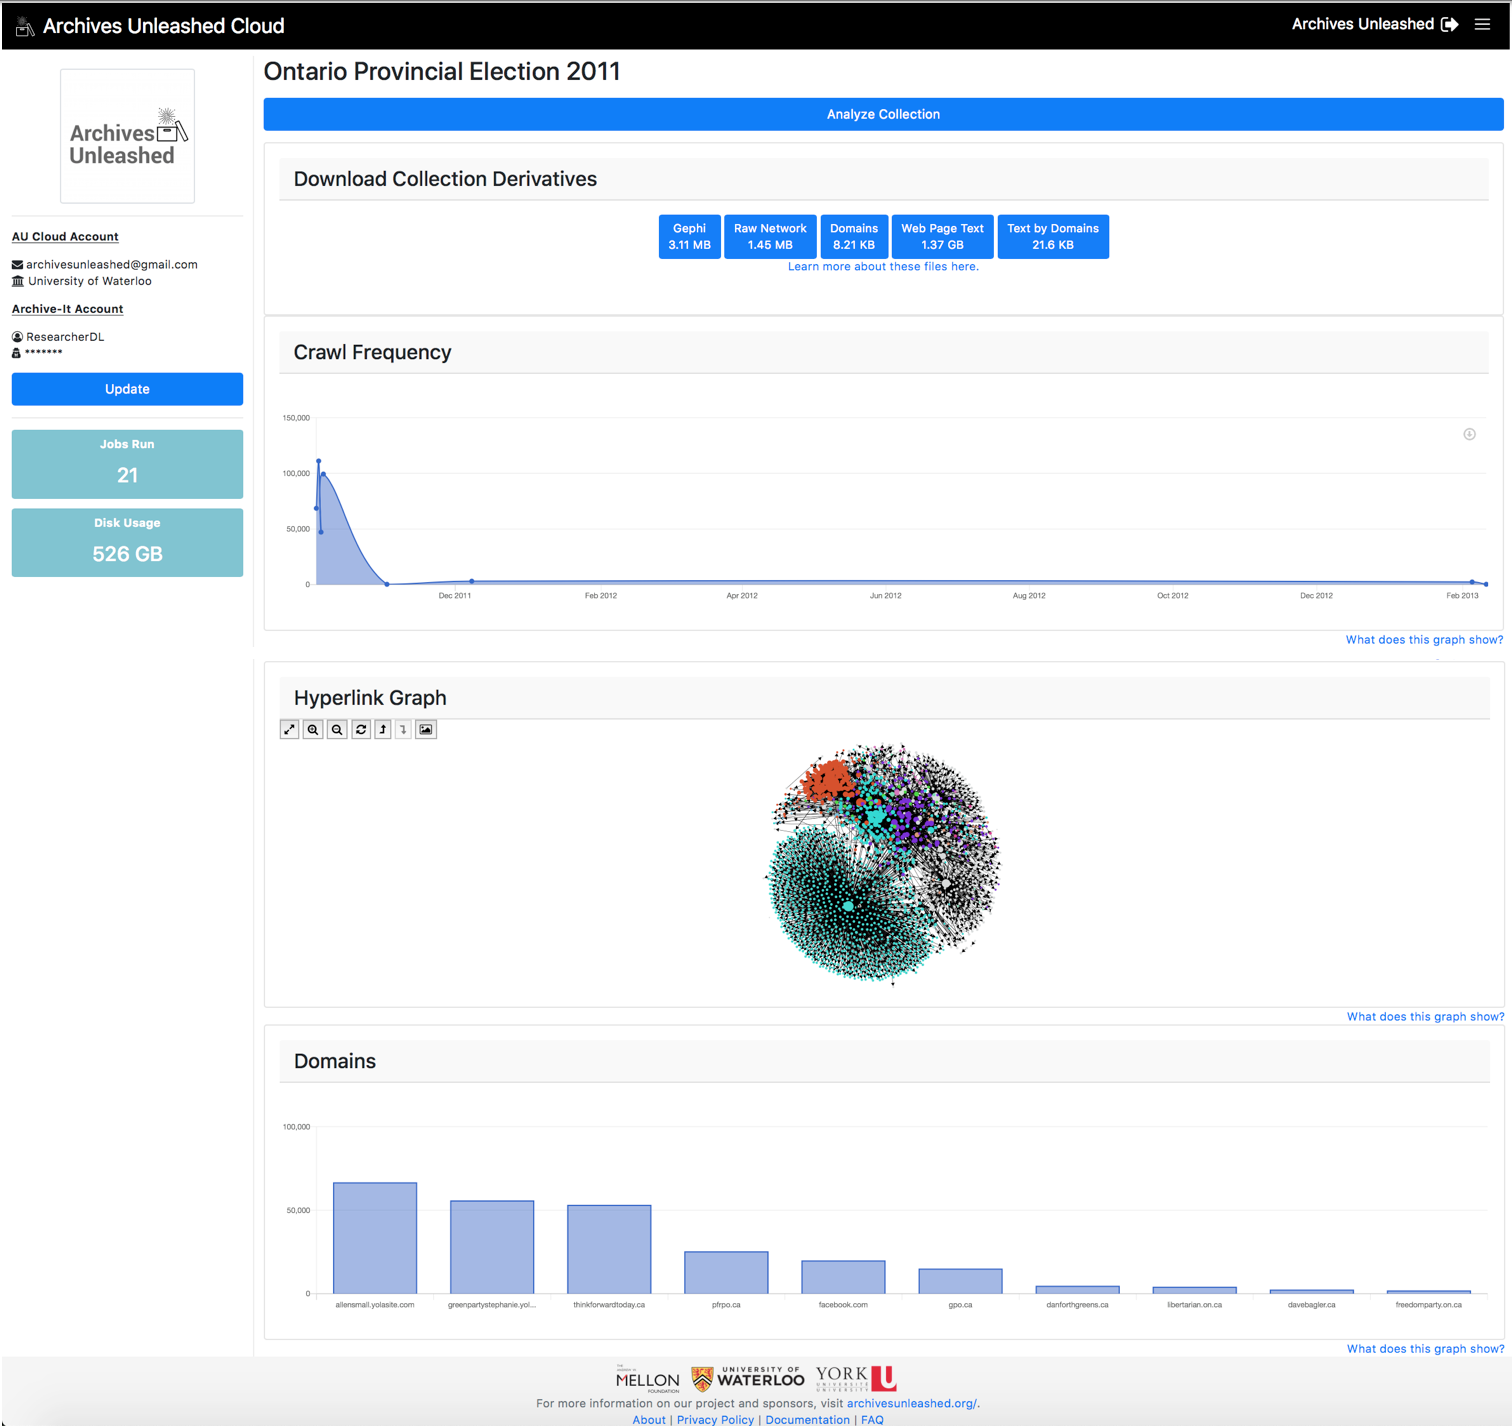 Archives Unleashed Cloud Interface for Analysis